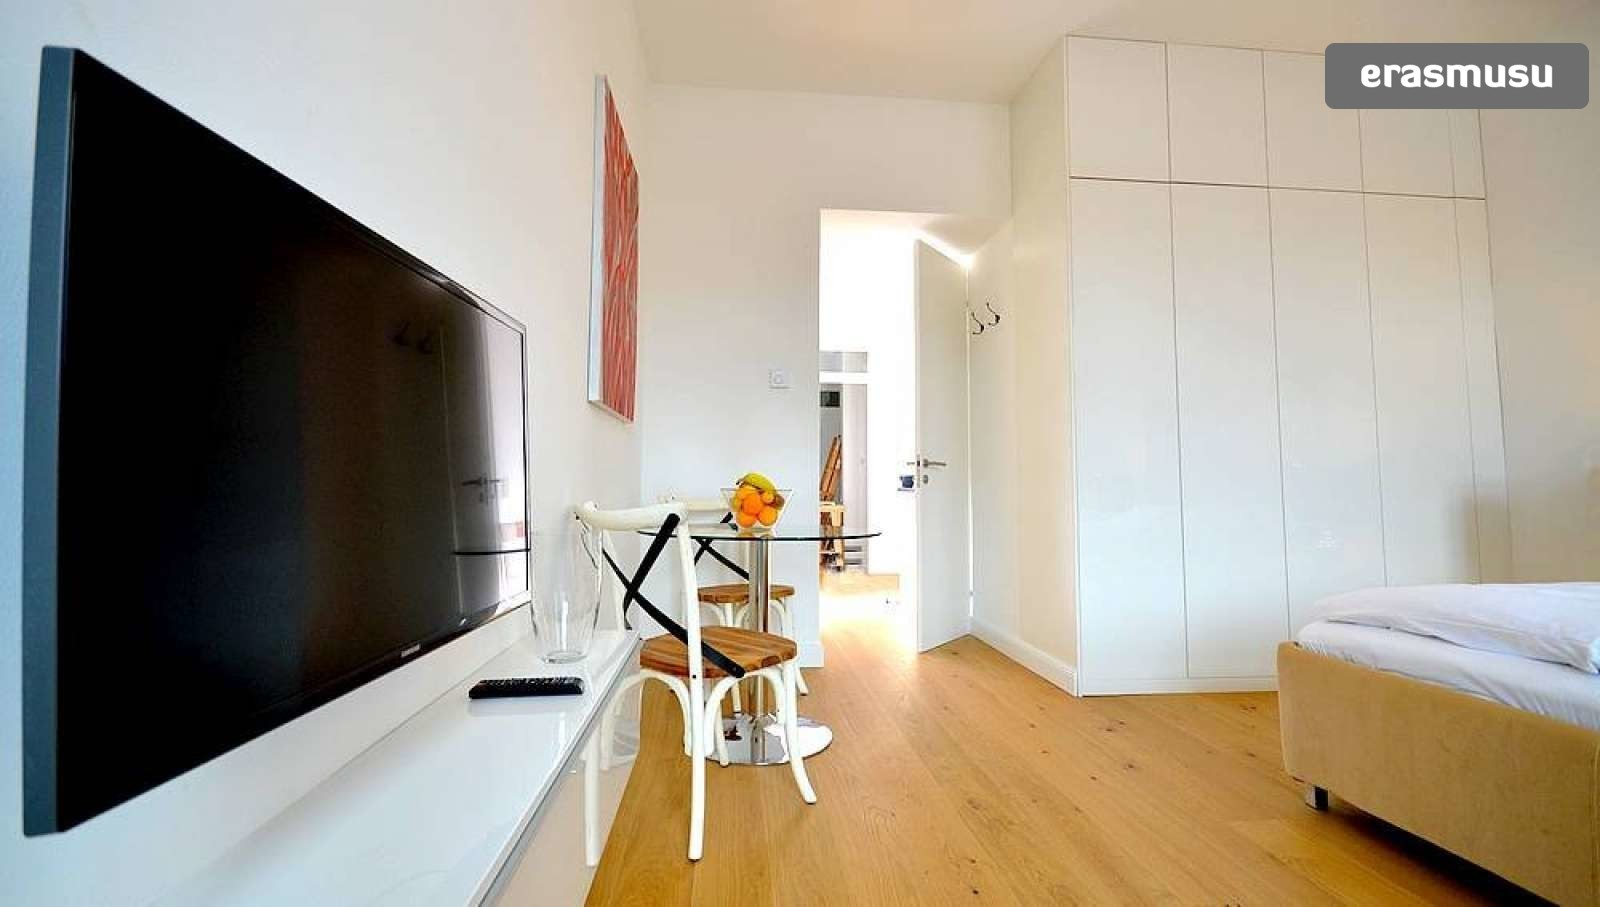 studio-apartment-rent-rudolfsheim-funfhaus-d3d95ceb4032cabead1cd